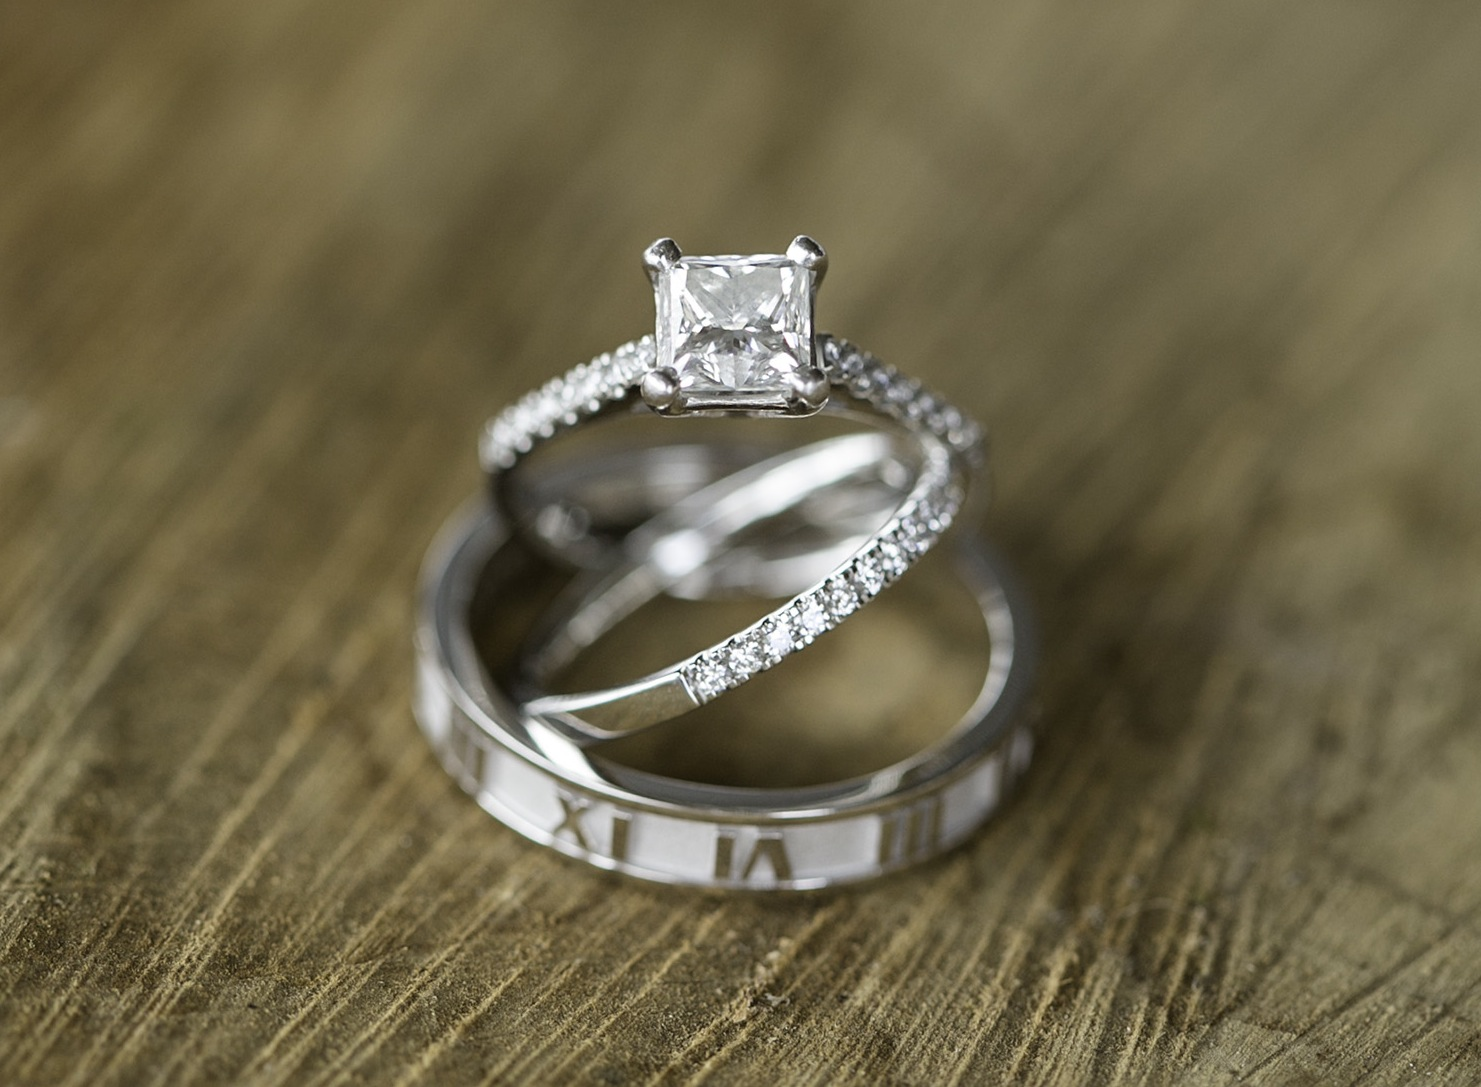 38 amazing engagement ring photos - Amazing Wedding Rings